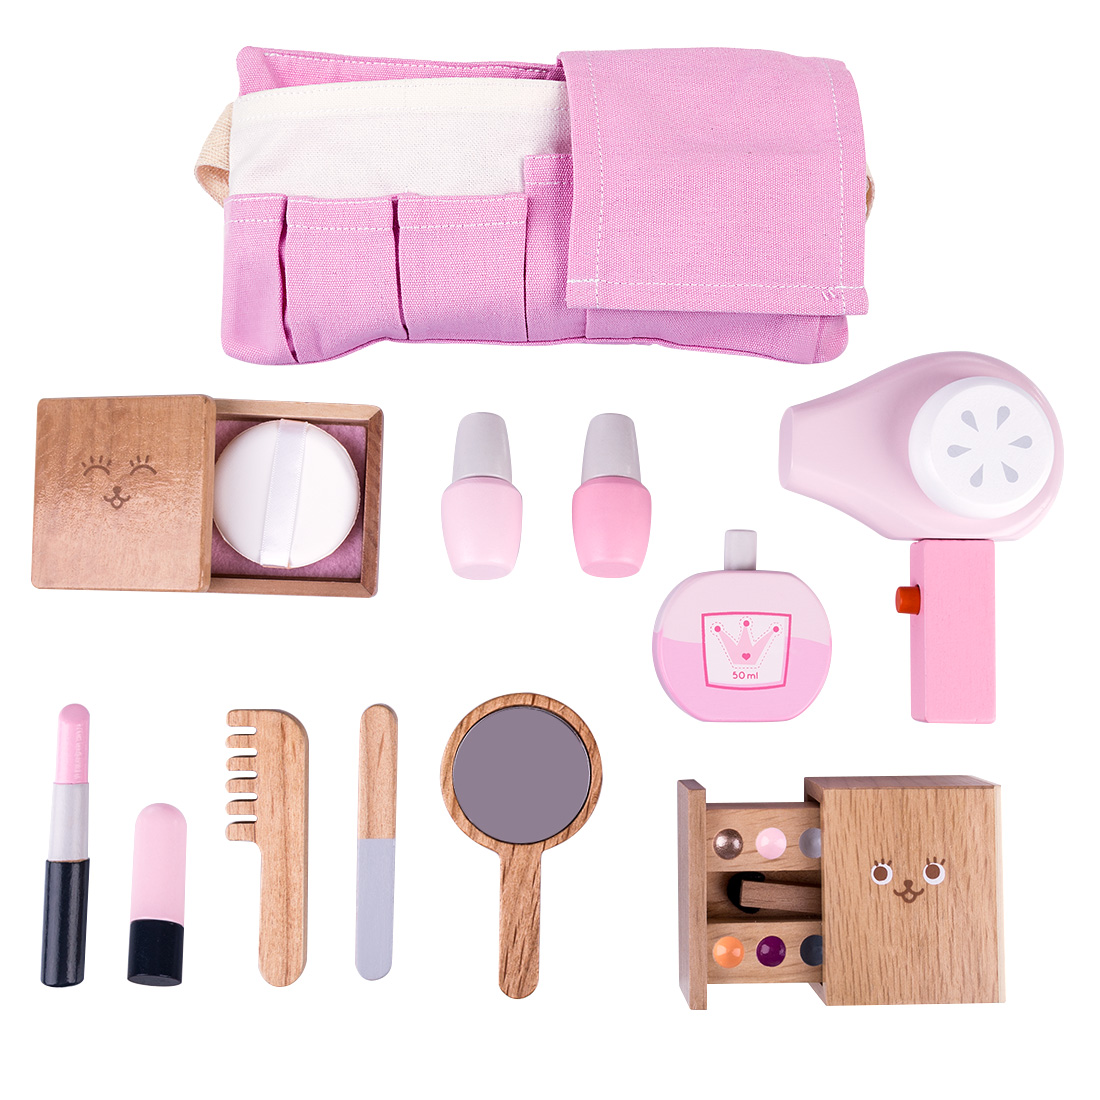 12Pcs Children Wooden Makeup Pretend Play Set Simulation Hair Dryer Toys Kids Birthdaty Gifts 2020